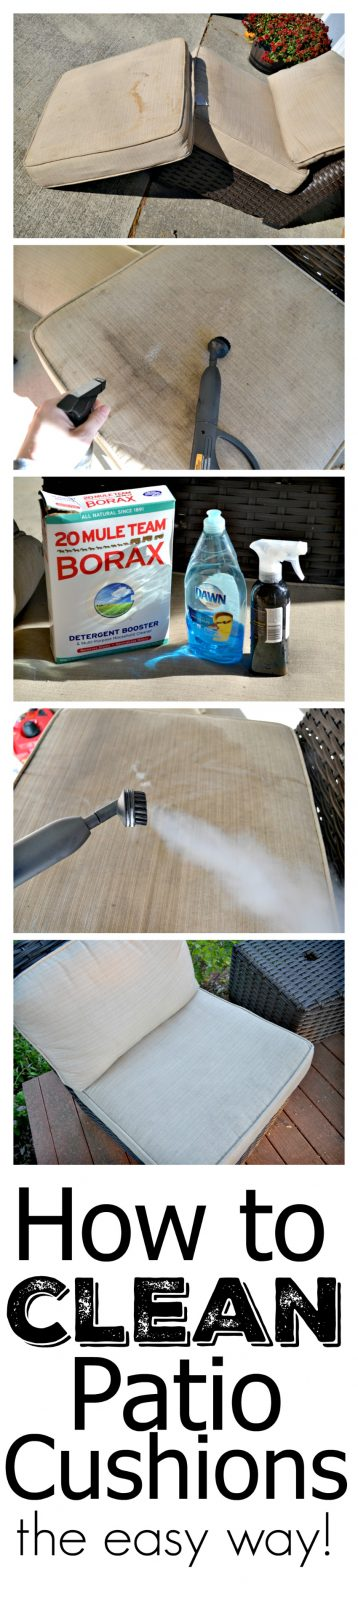 How to Clean Patio Cushions with Steam